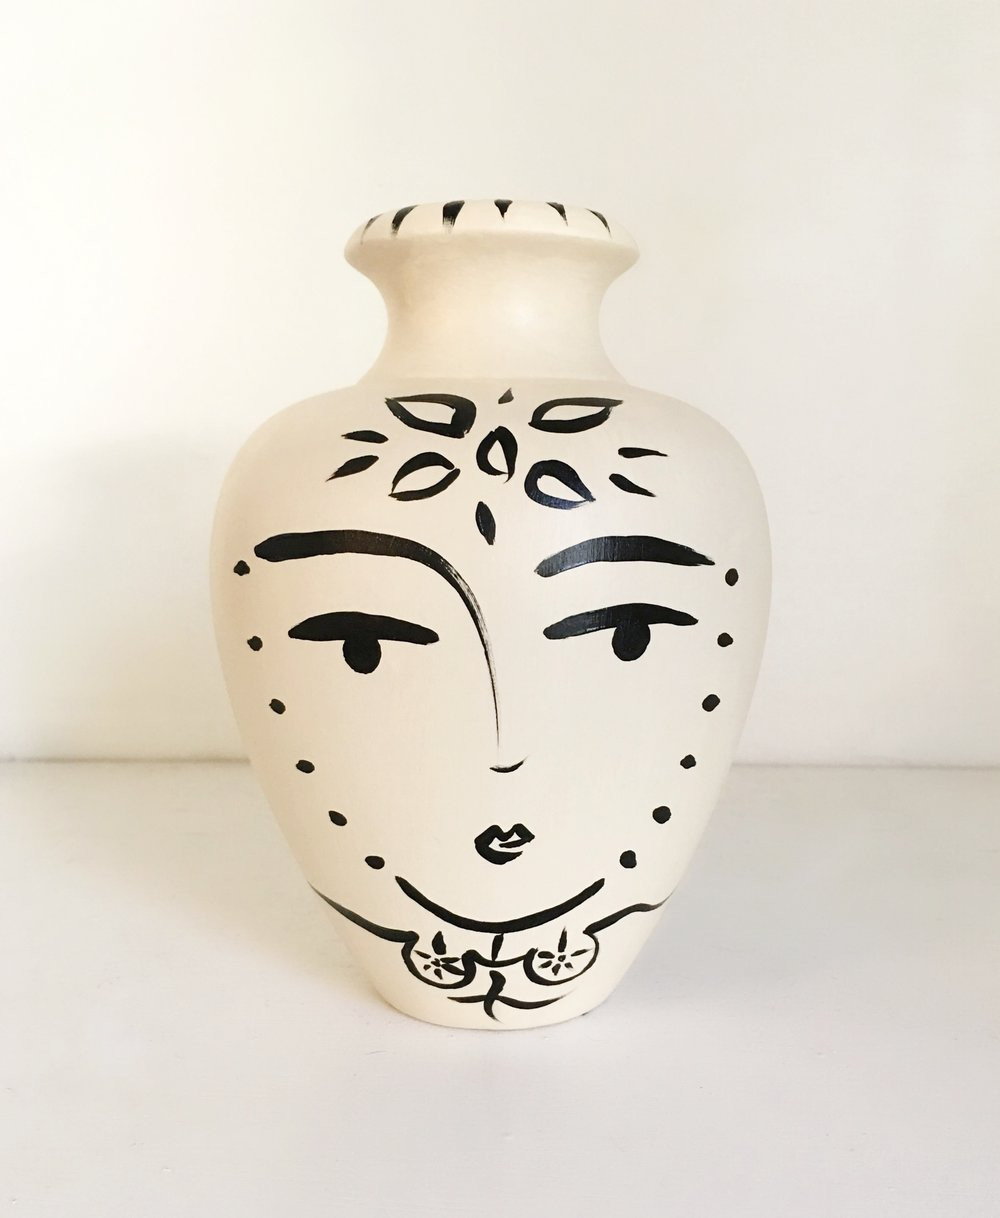 Lady Head Vase Collection Of Paige Pottery Paige Kalena Follmann Inside Sacred Femme Flower Vase sold Quogue Gallery